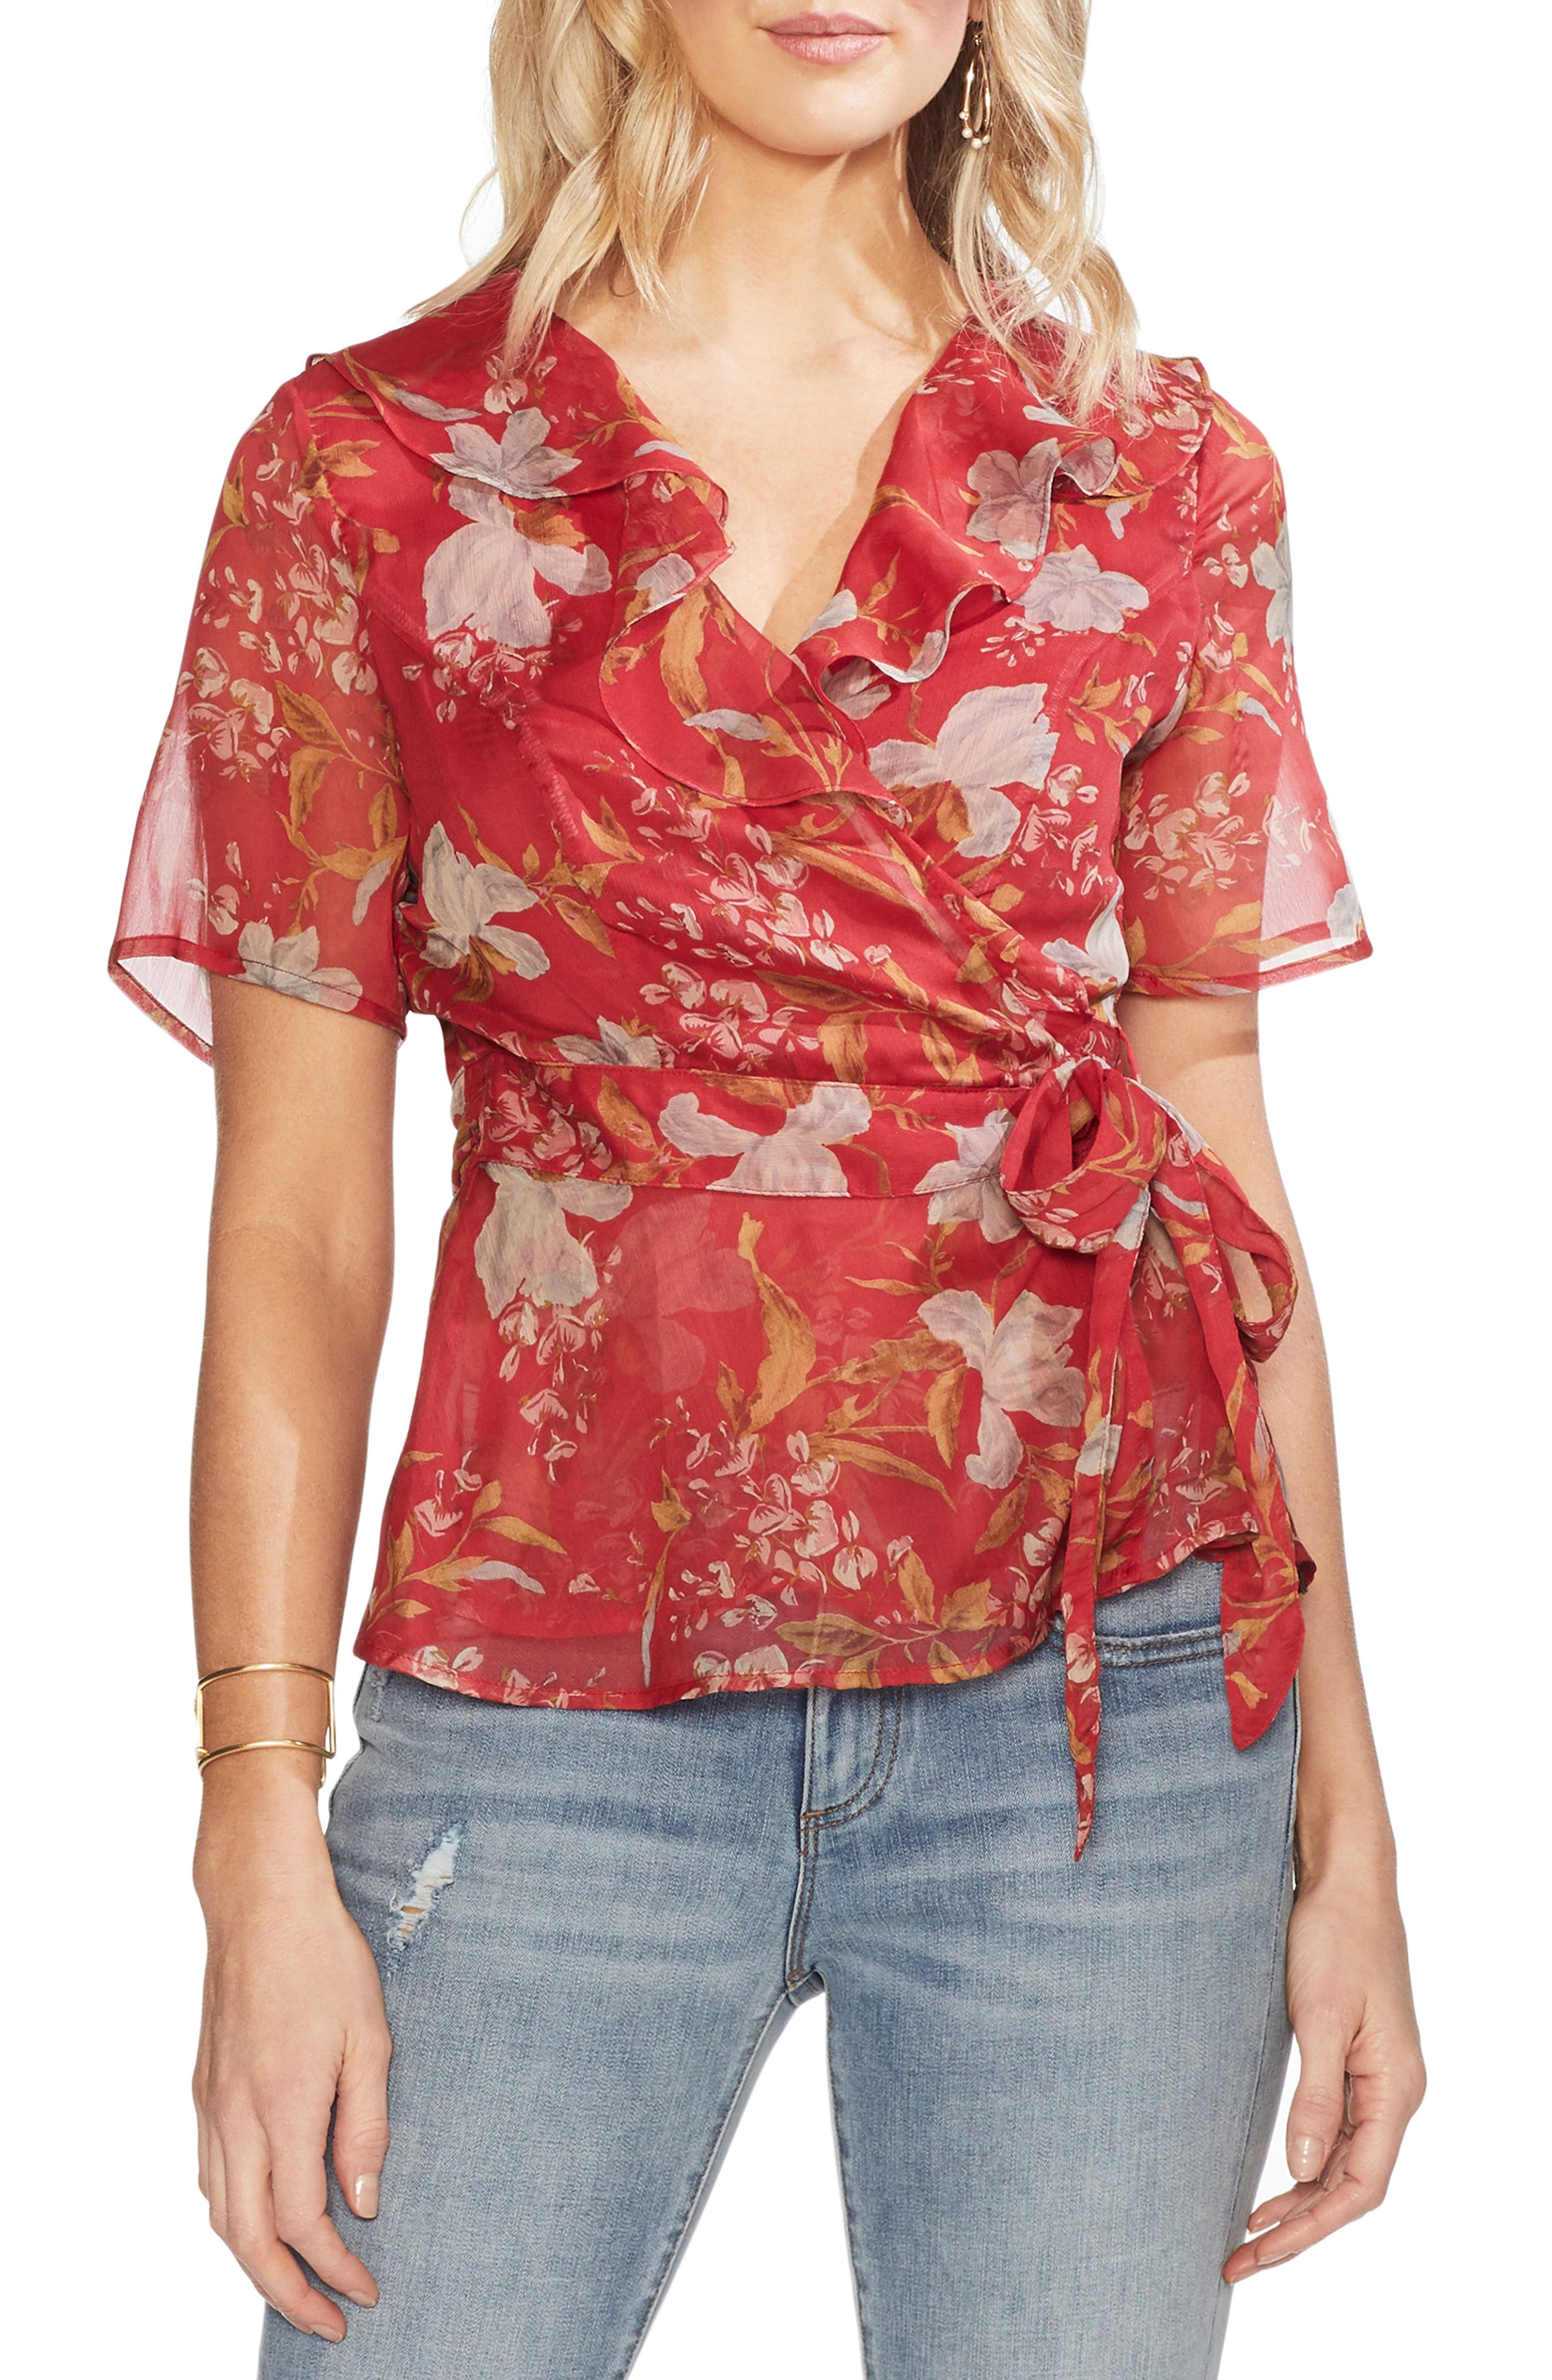 VINCE CAMUTO, Wildflower Wrap Front Tie Blouse, Main thumbnail 1, color, CORAL SUNSET